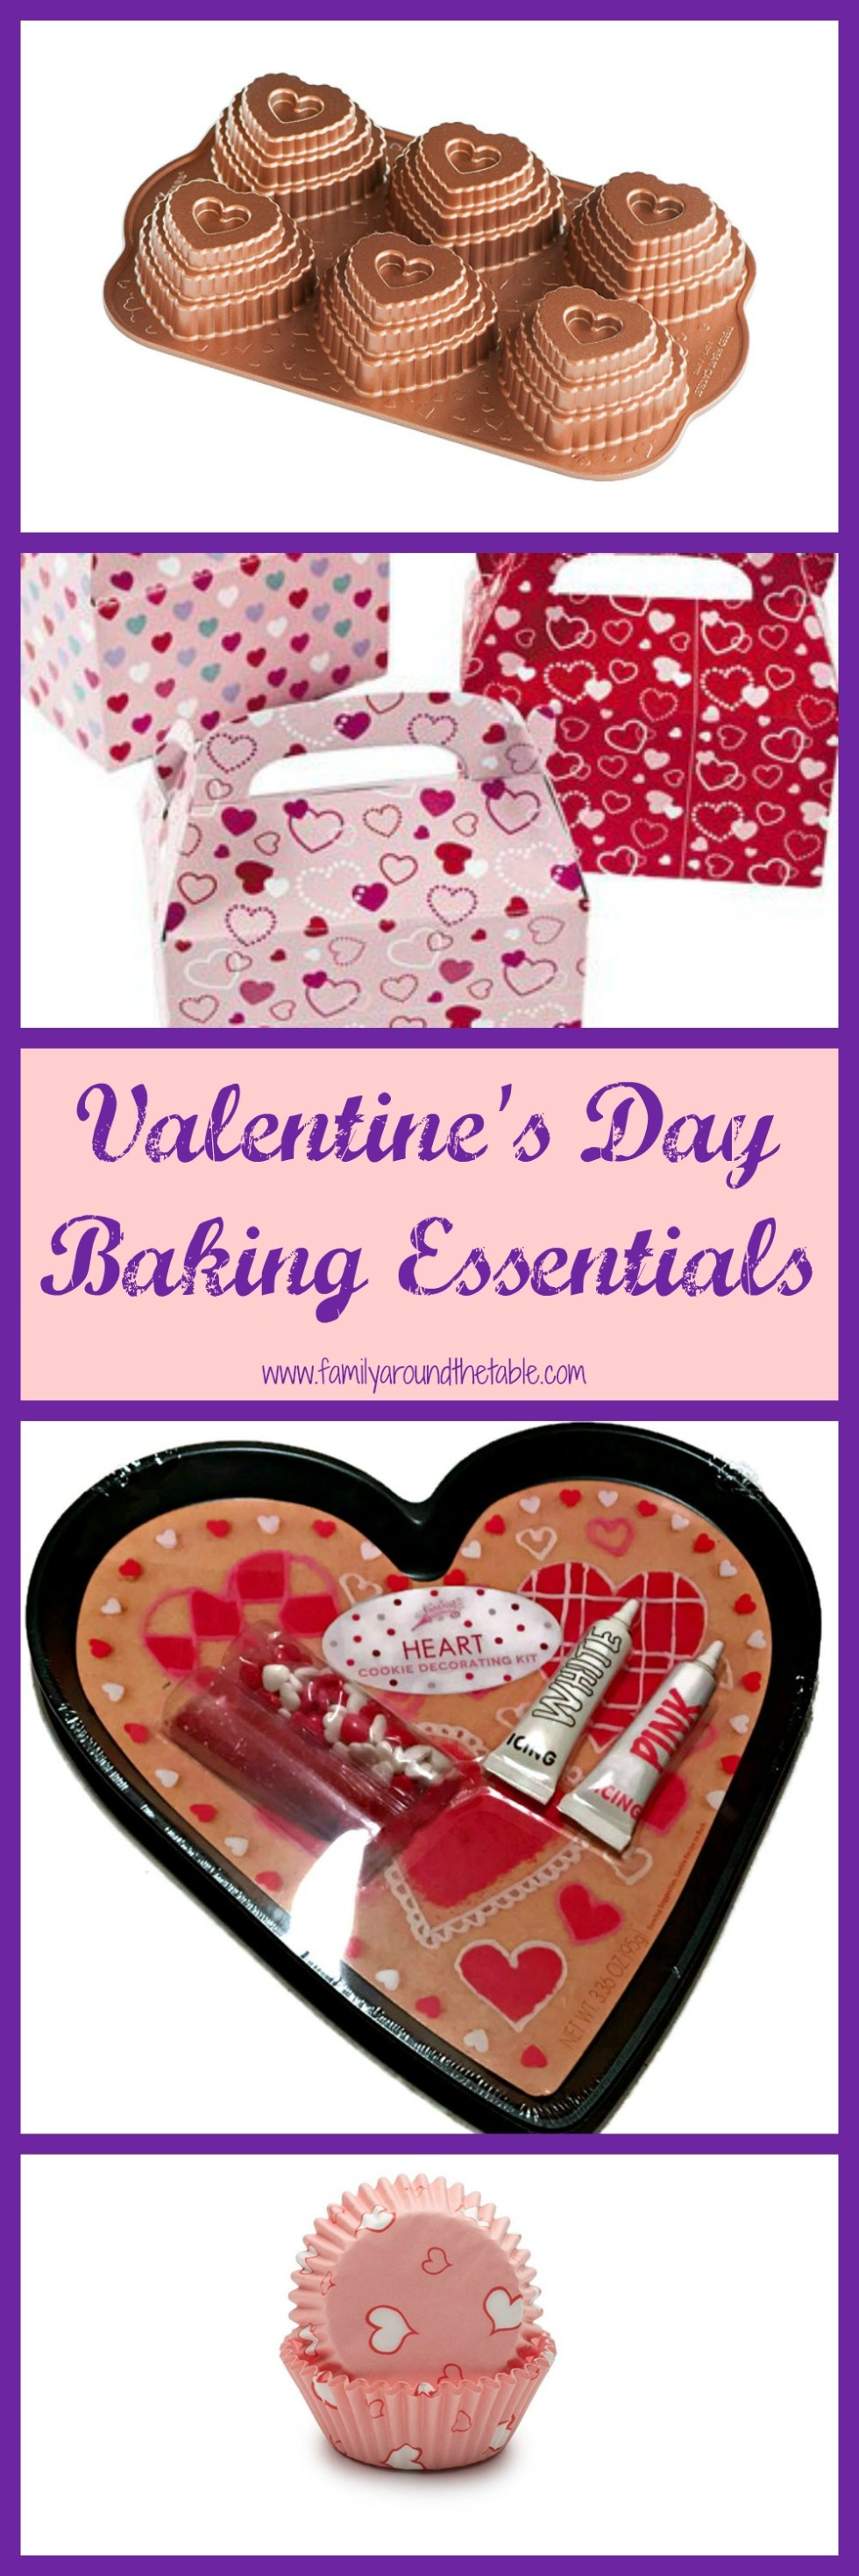 Treat your family to some special baked goods this Valentine's Day!